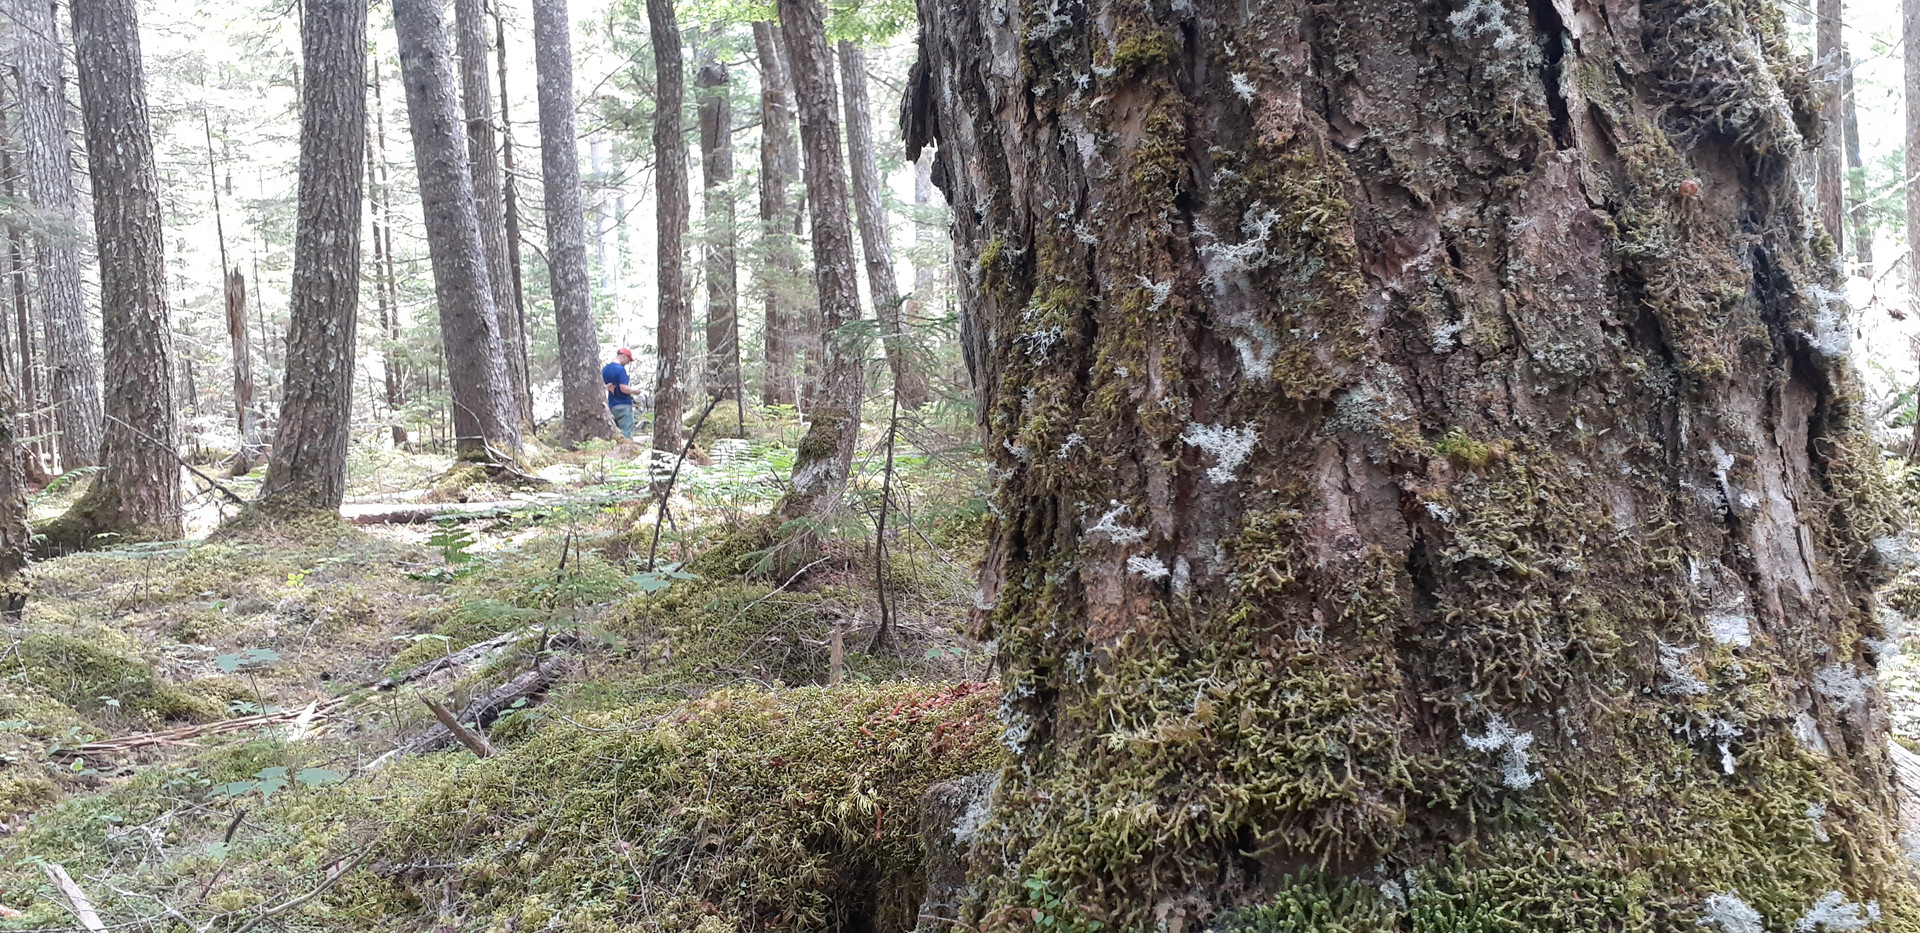 An old growth coniferous forest